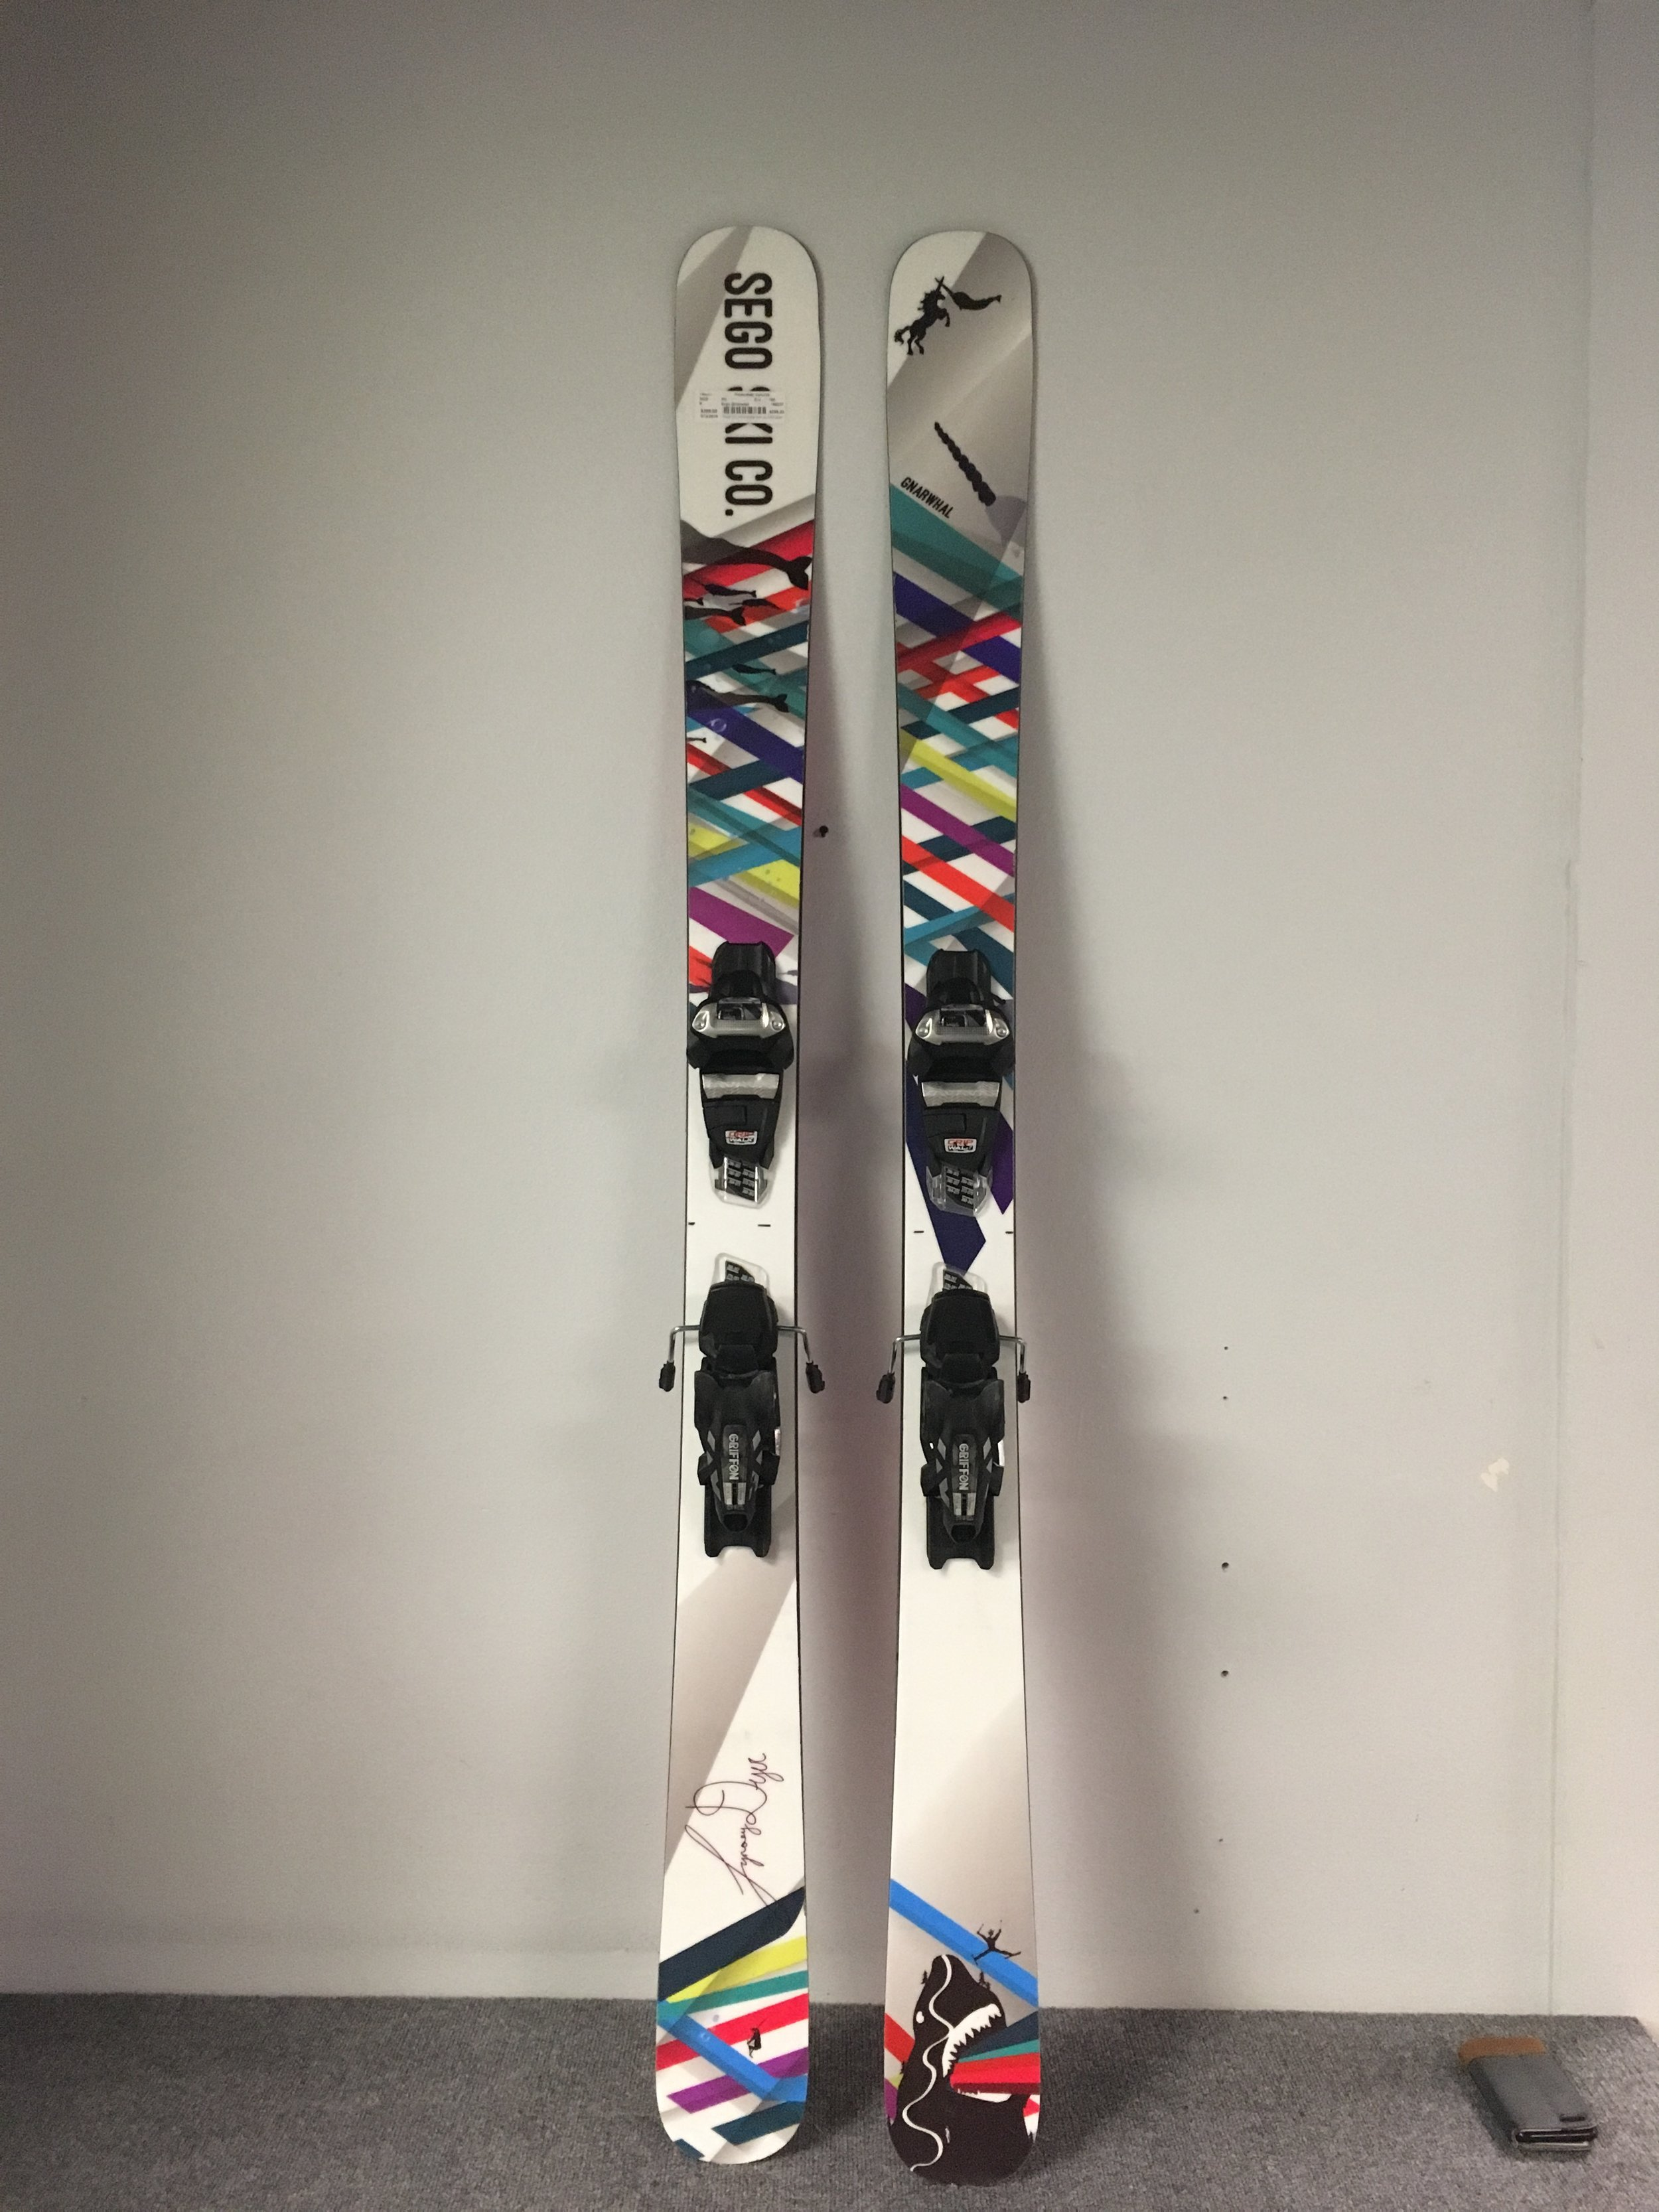 Here's you daily driver from Sego! Being 100mm under foot the Gnarwhal is a quiver killer for both on and off piste skiing. The planks new run for $800 but we can get you skiing for $400! The length is 165.